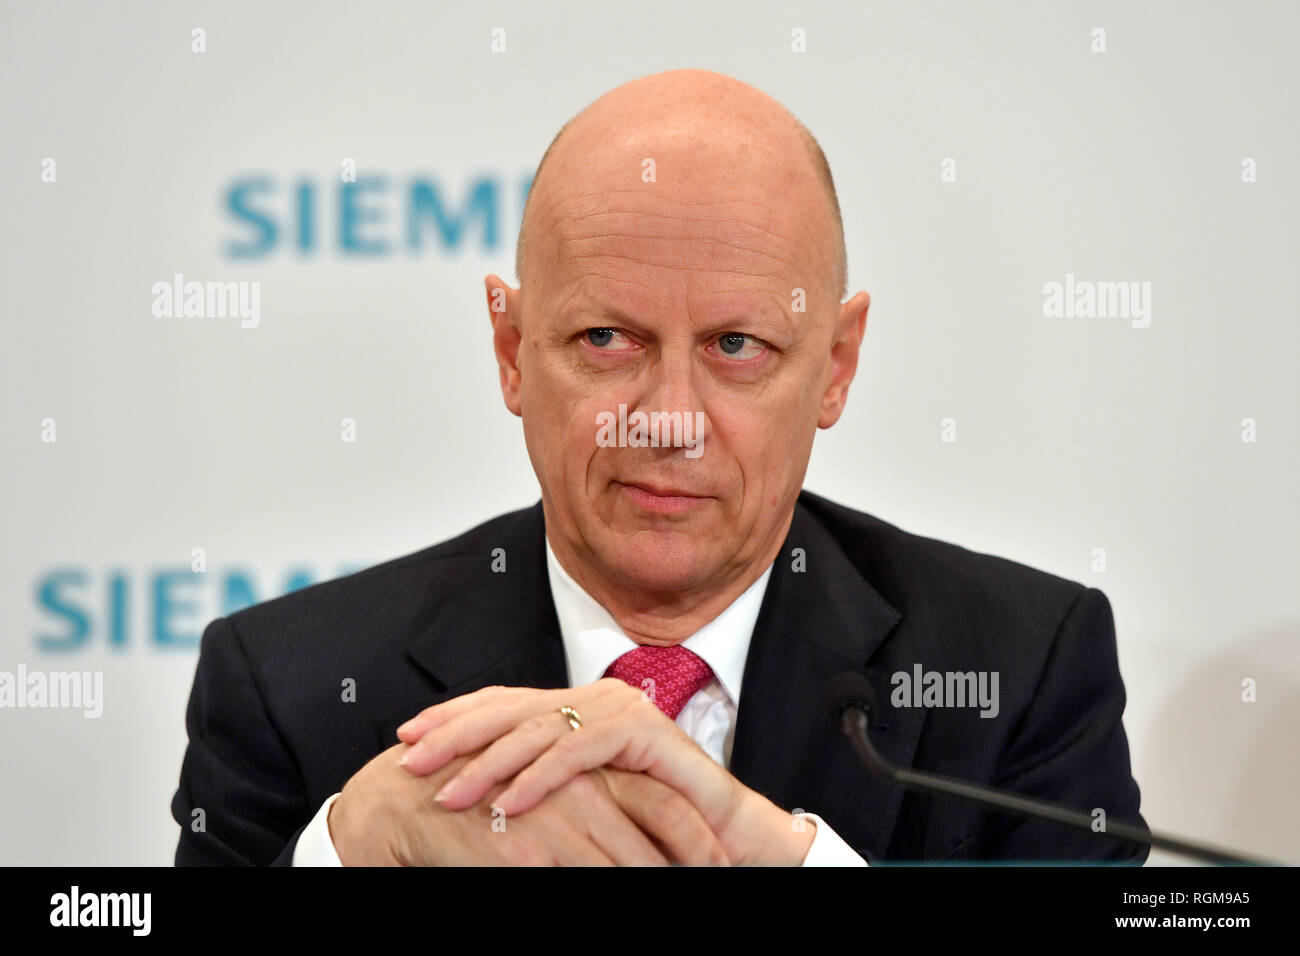 Press Conference At Siemens General Meeting Stock Photos